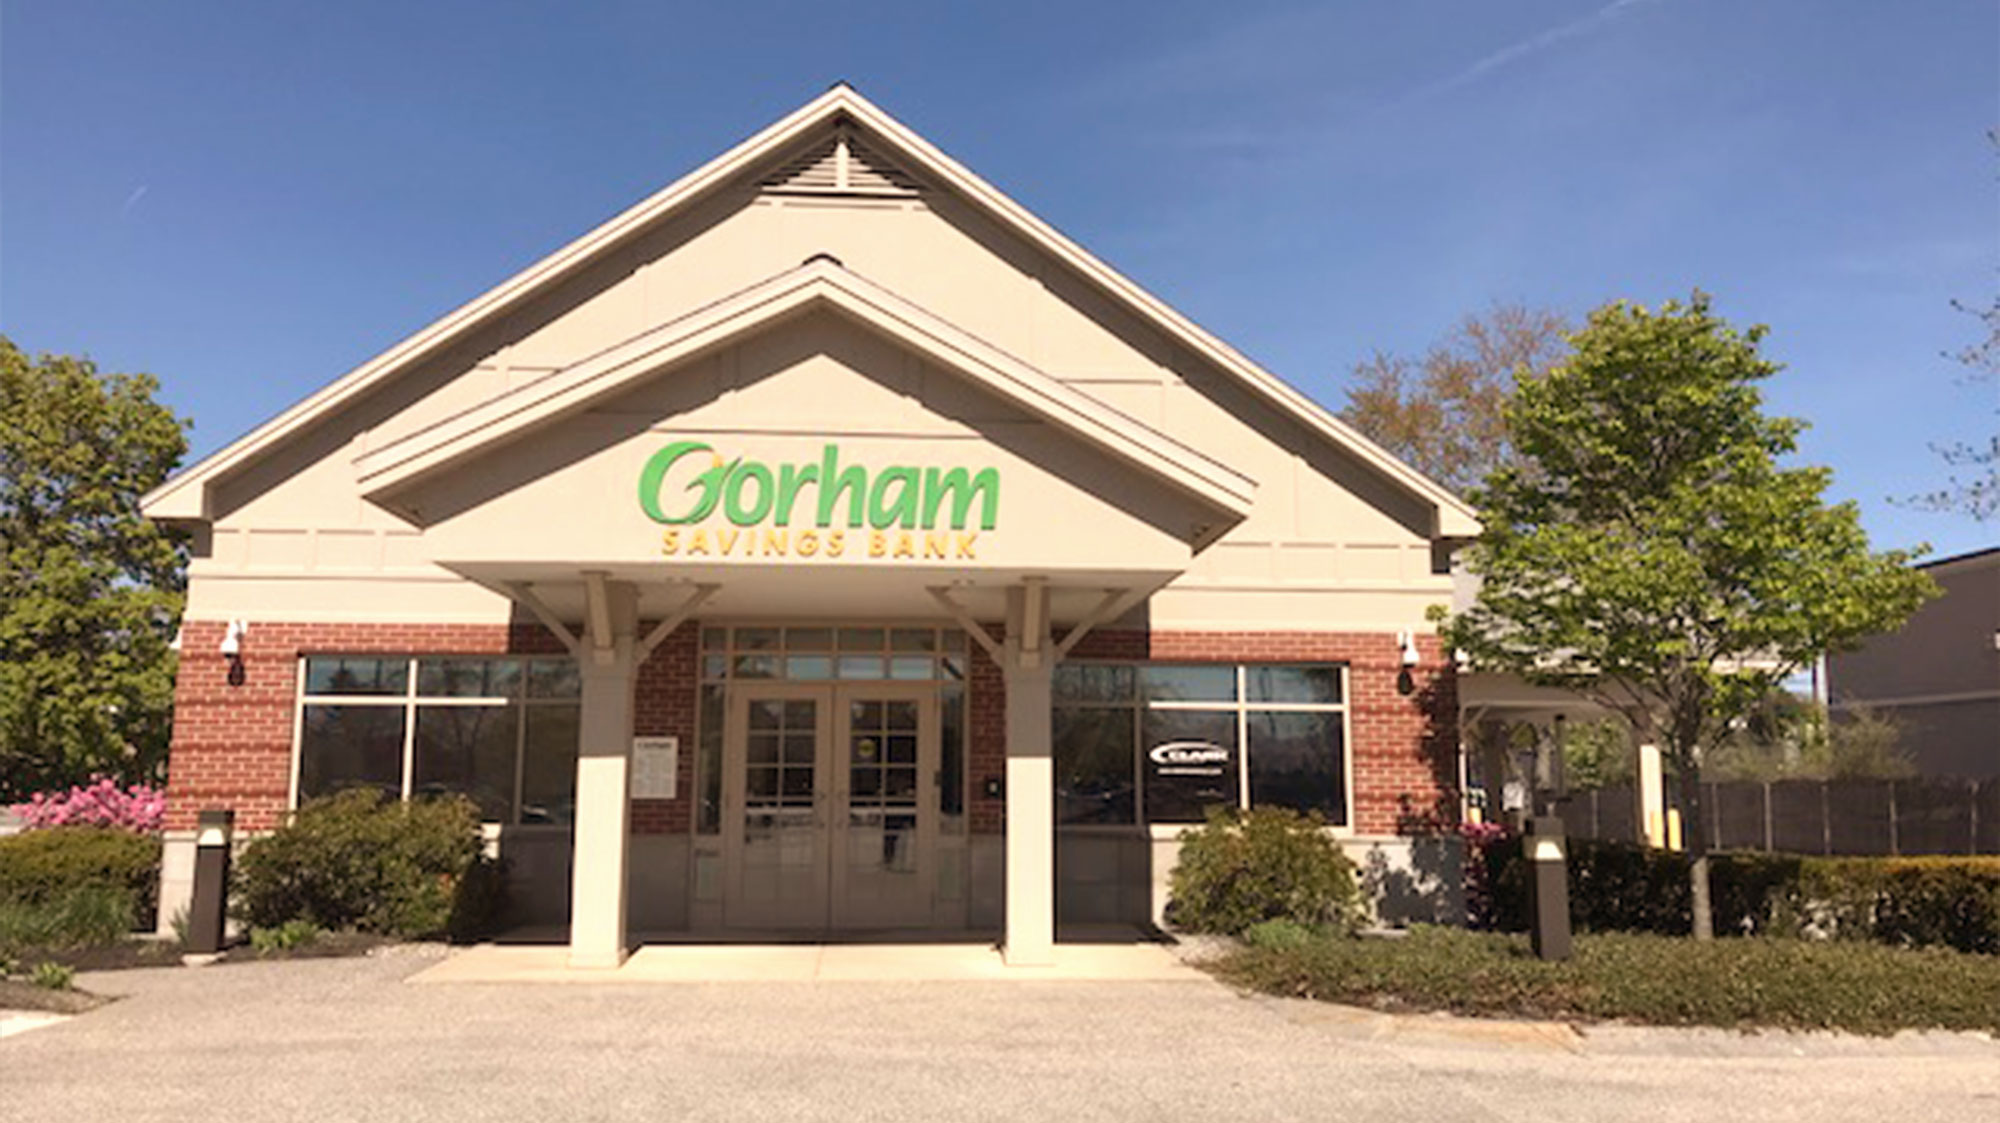 Gorham Savings Bank Windham location outside during the day